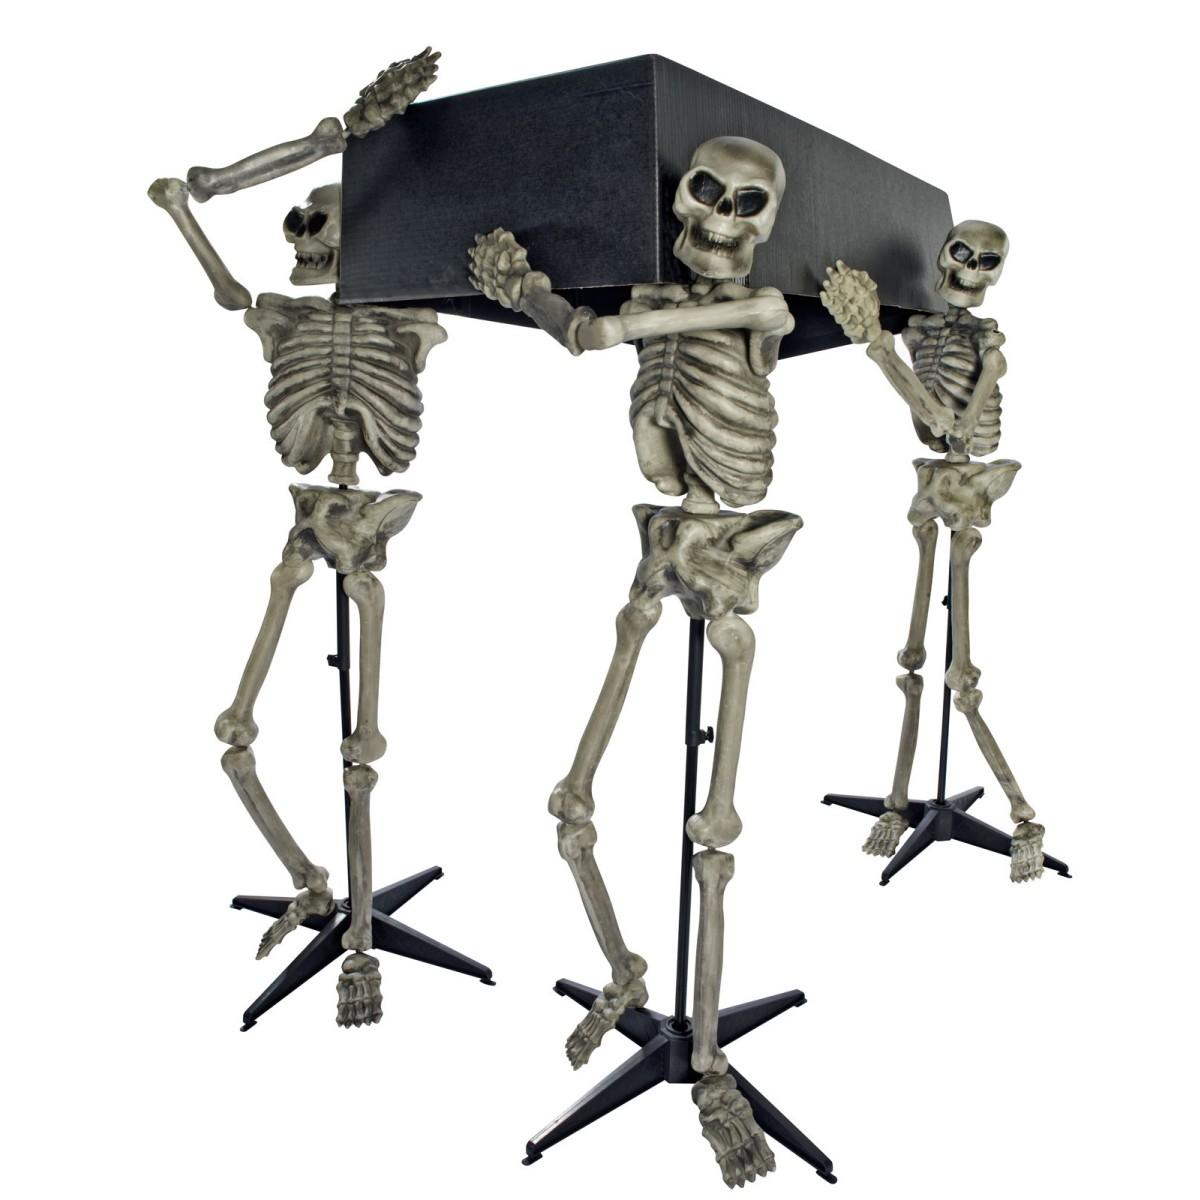 skeleton model skeleton skeleton three set halloween decorations decoration decorations fear horror haunted mansion toy coffin carrying skeleton set - Halloween Decorations Skeleton